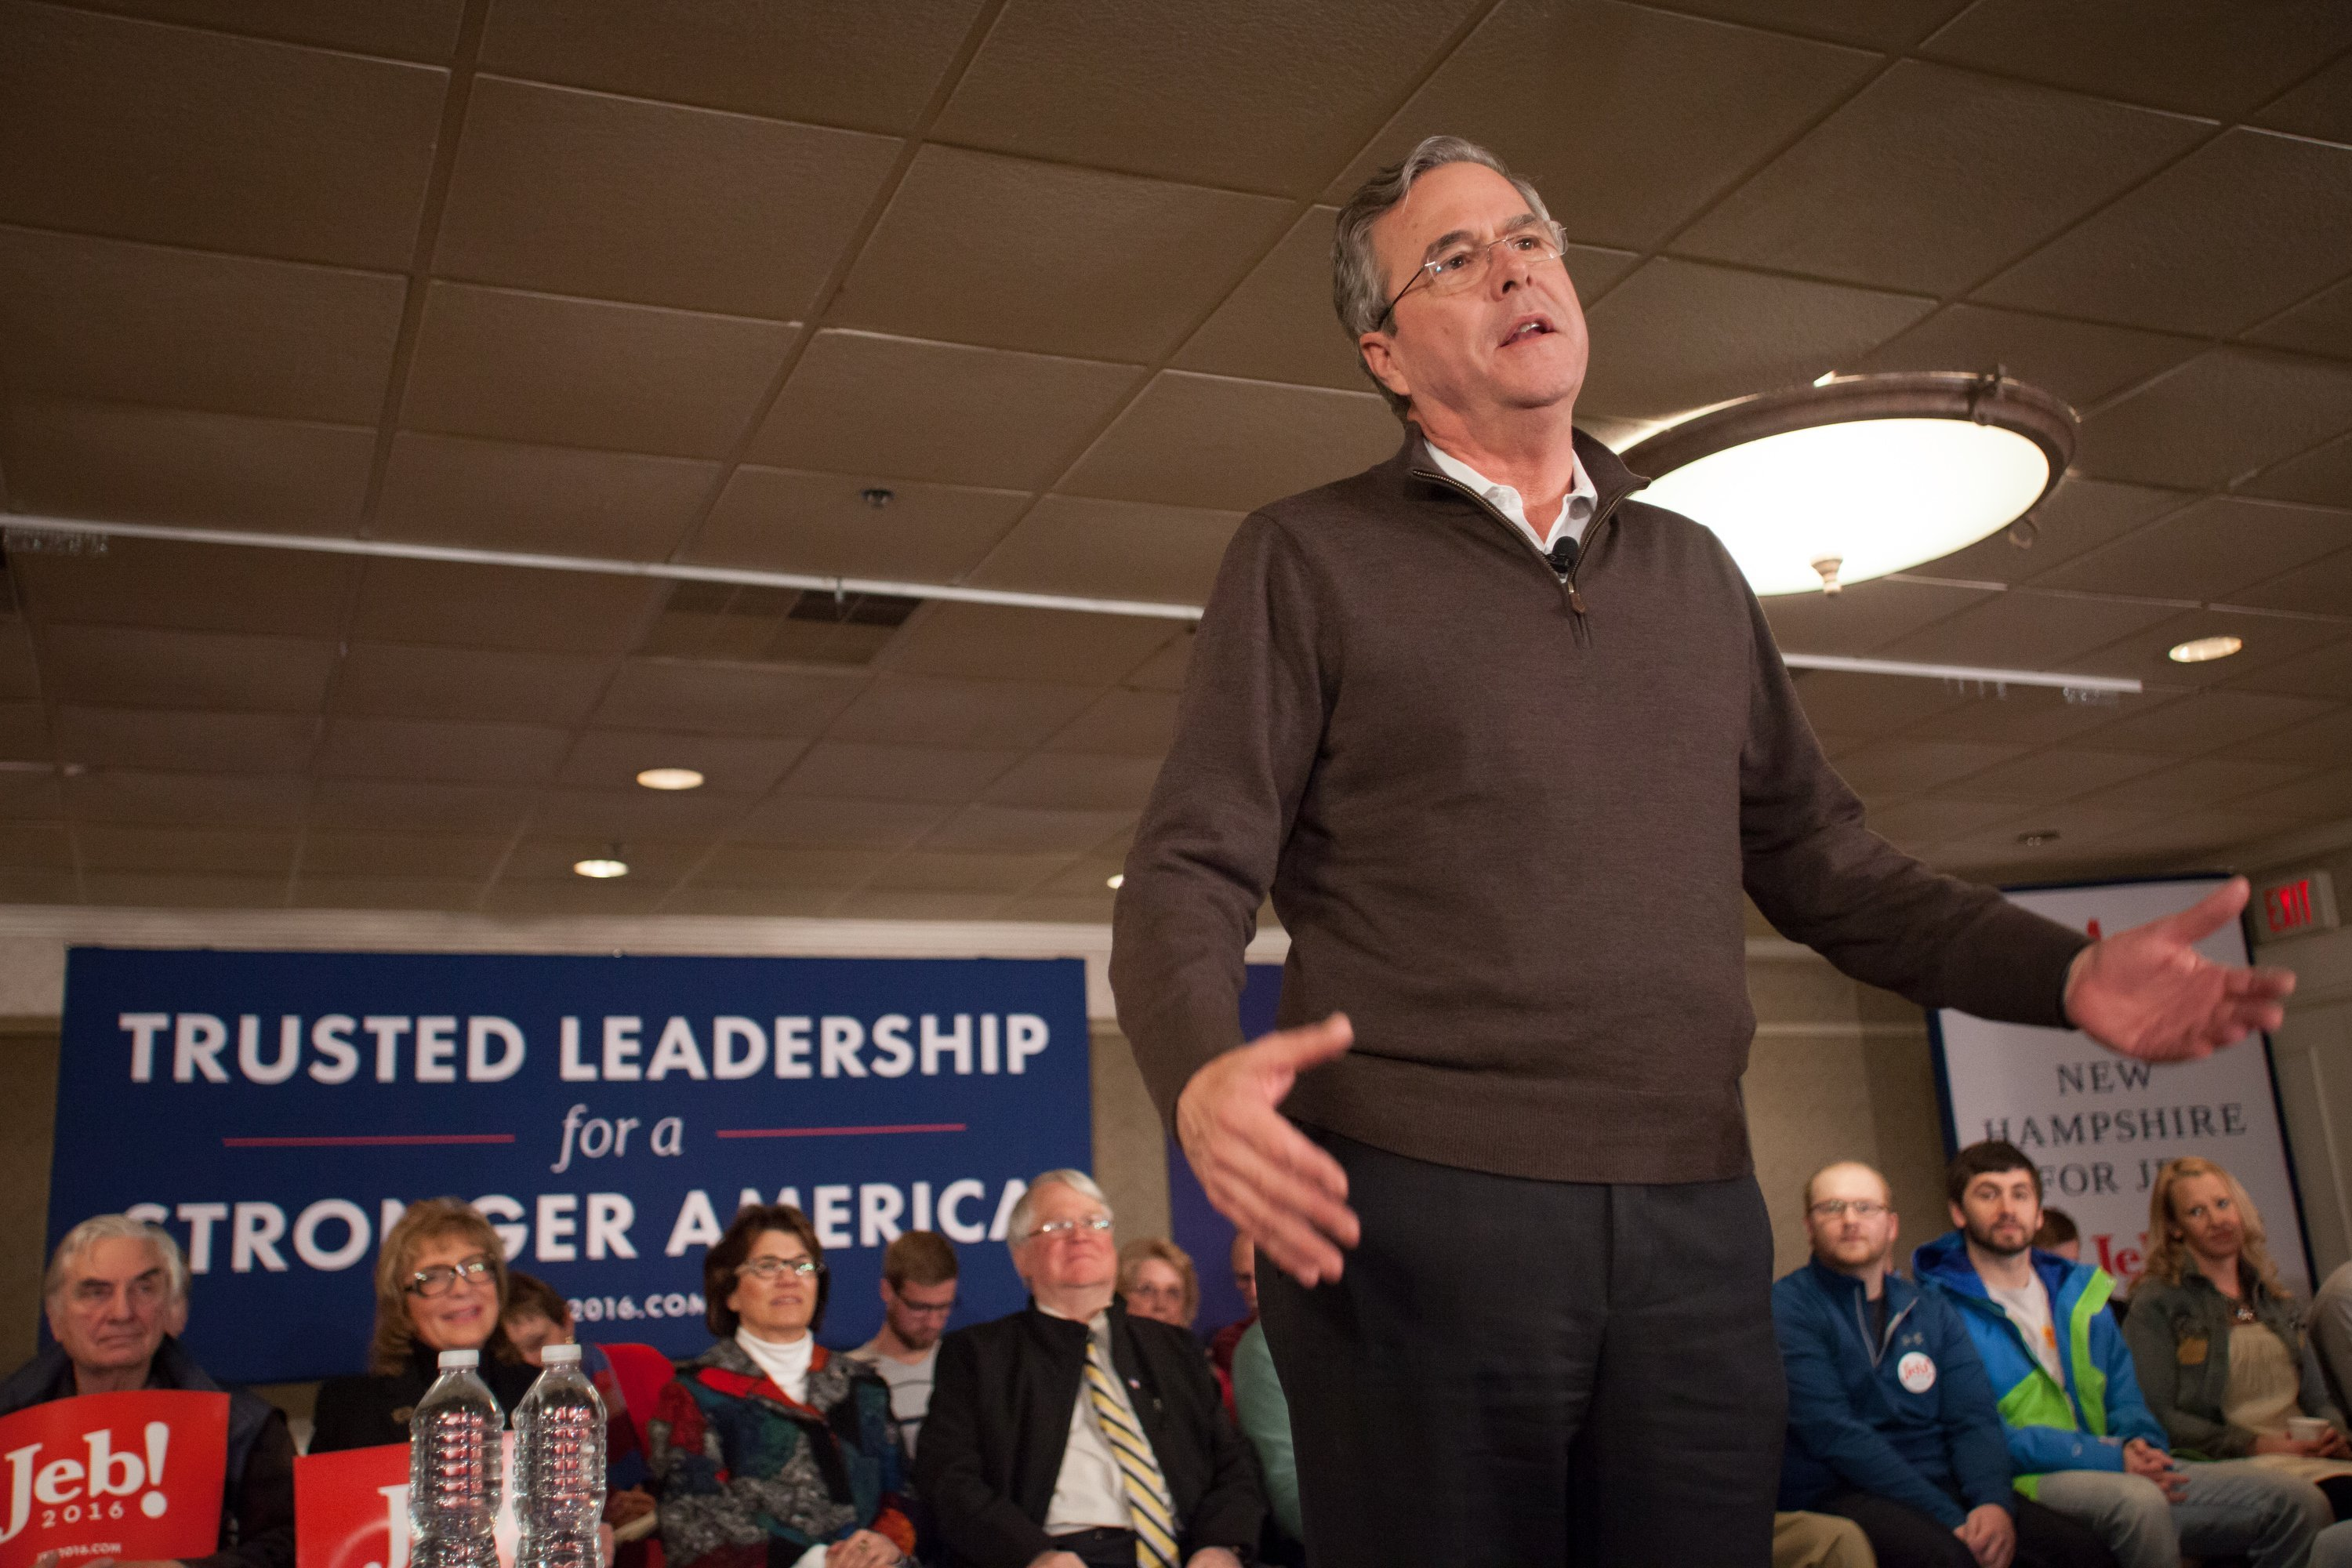 Republican presidential candidate Jeb Bush delivering a speech at the Margate Resort in Laconia, New Hampshire, in 2016   Photo: Getty Images